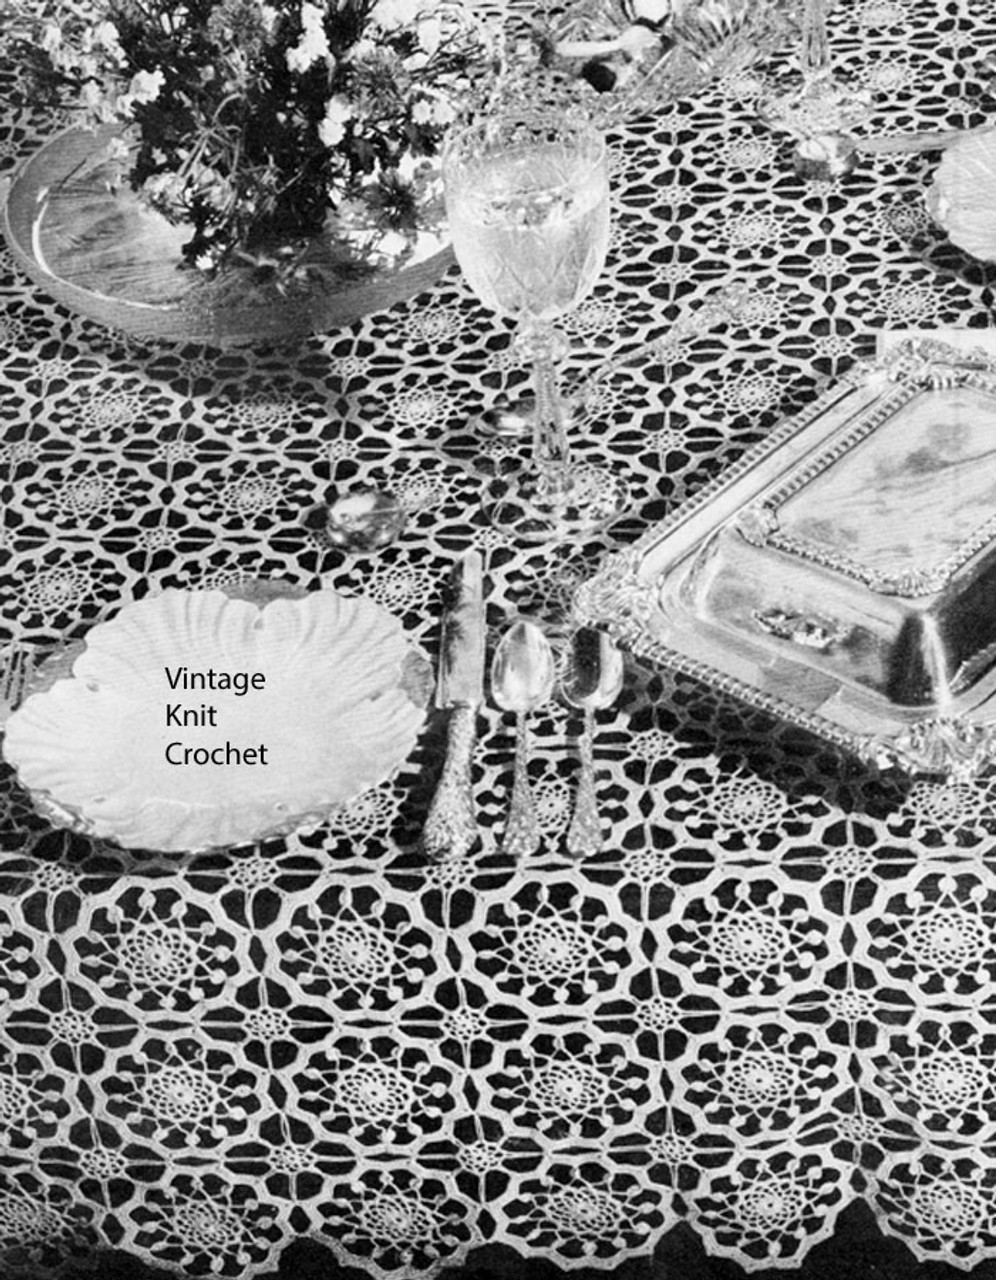 Vintage Crocheted Grand Manner Tablecloth Pattern No 7597